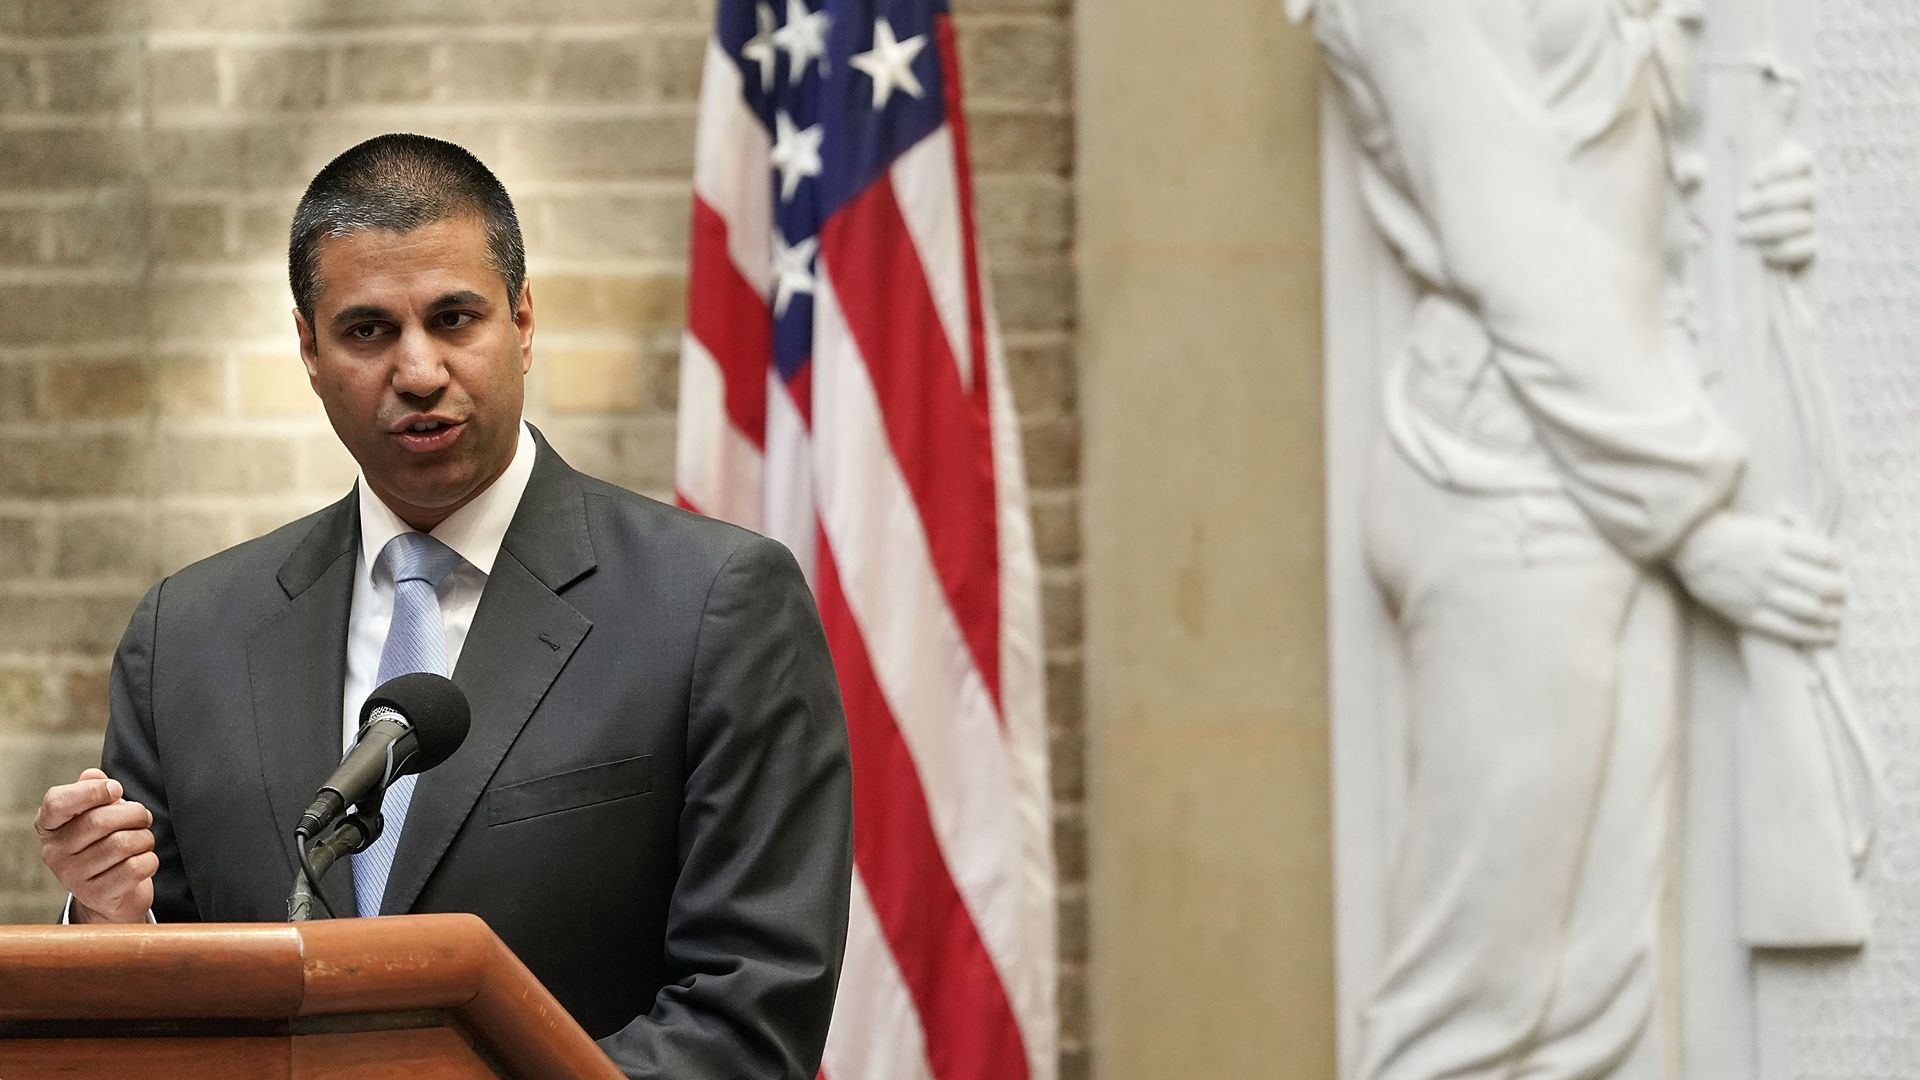 FCC Chairman Ajit Pai speaks in front of an American flag